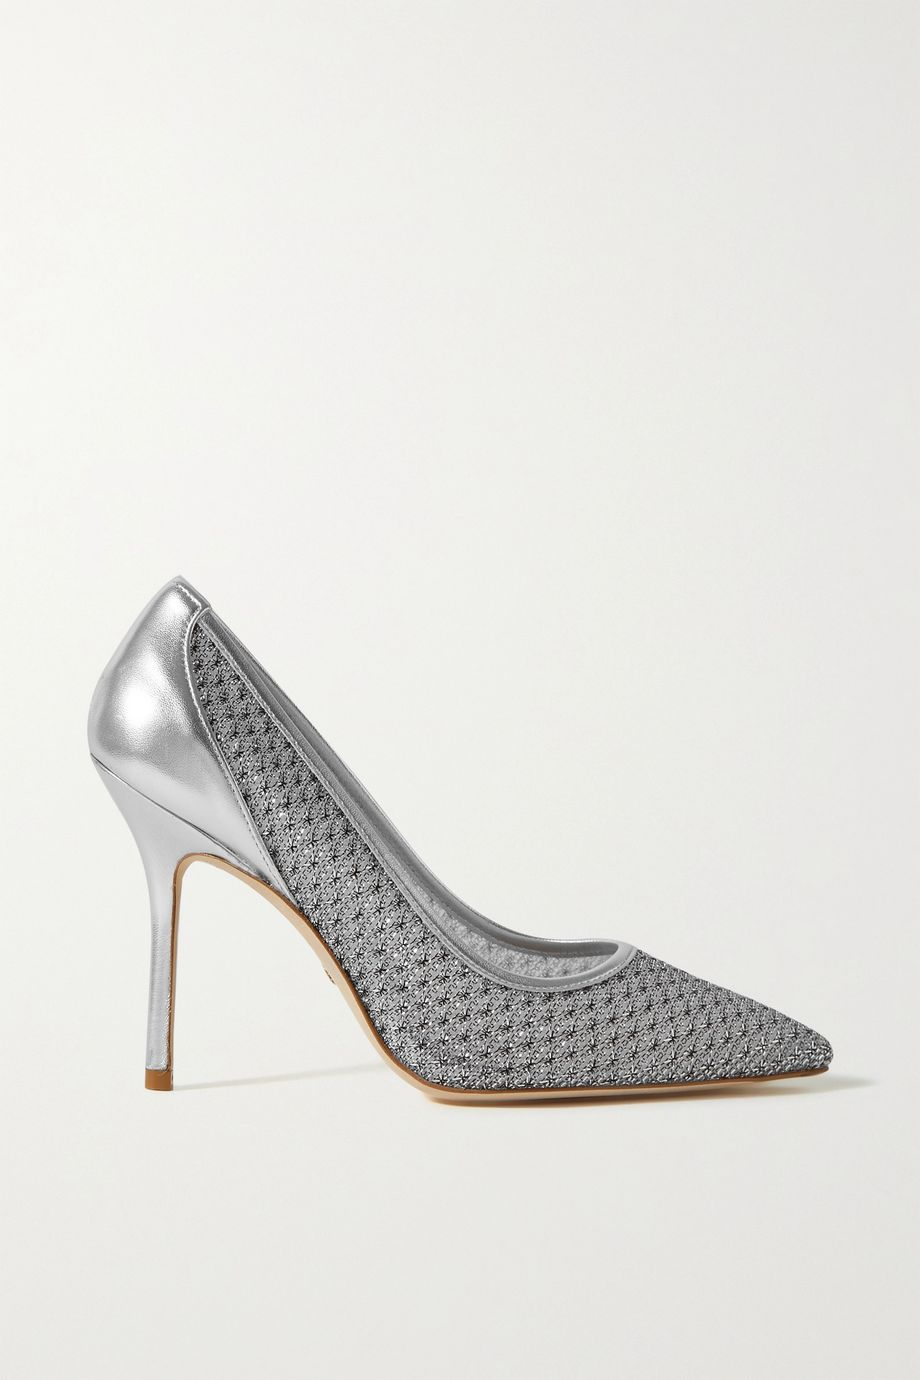 Stuart Weitzman Tasha metallic mesh and leather pumps